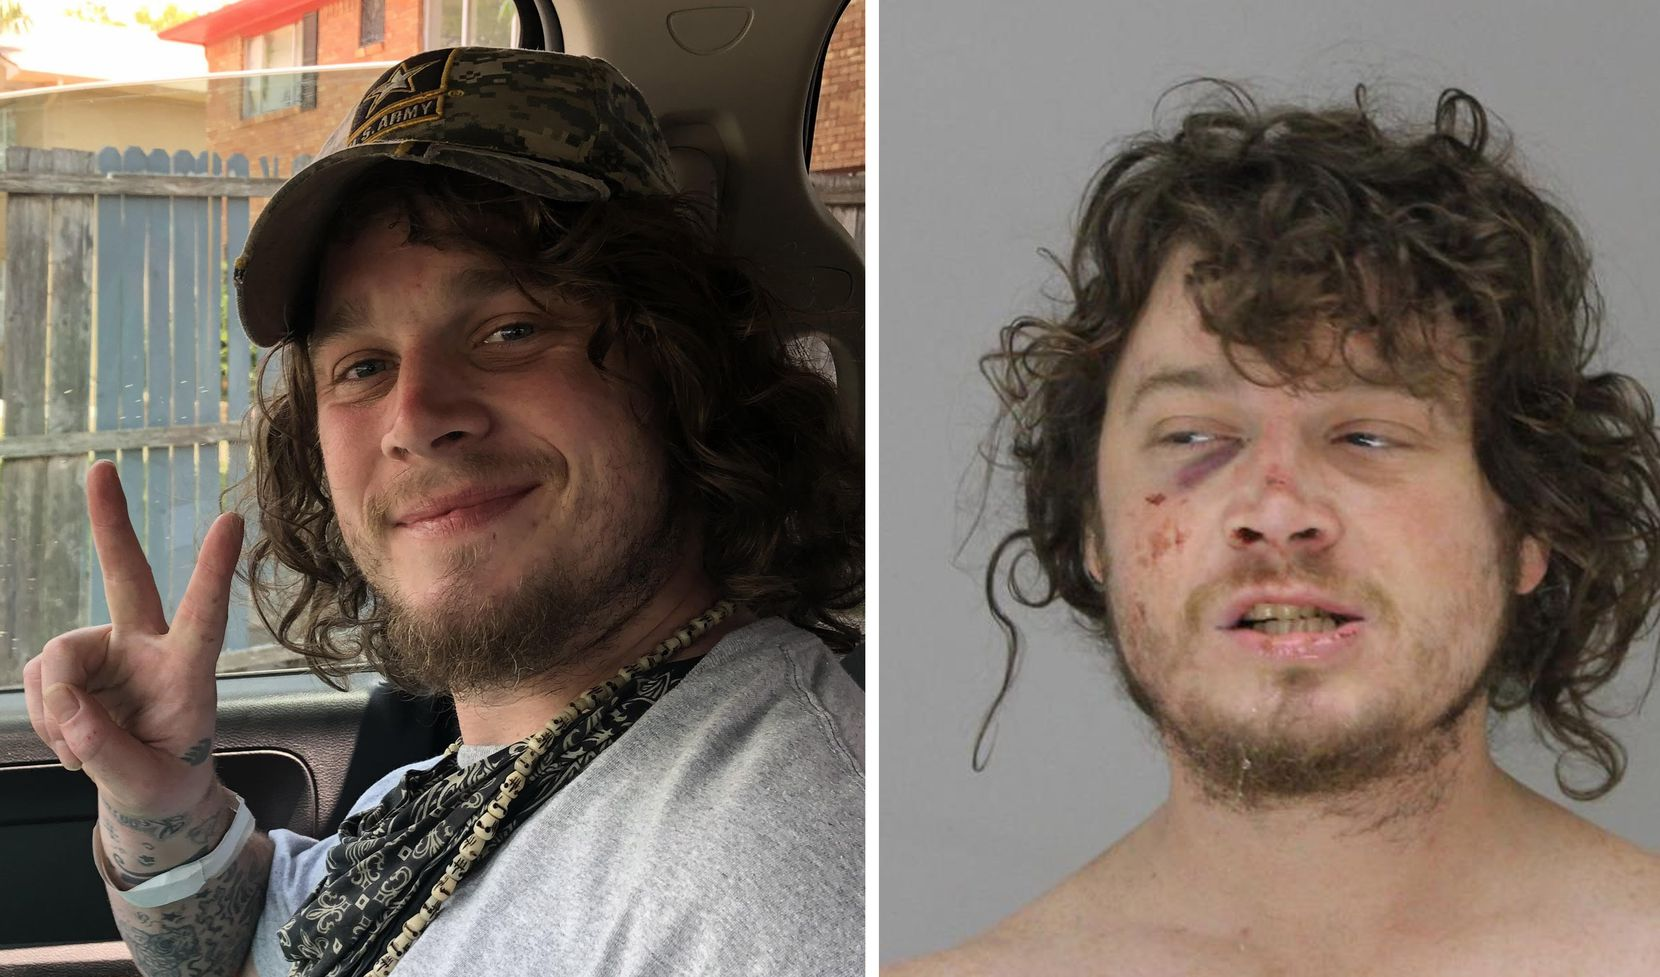 Kyle Vess' mother visited him one week before Dallas paramedic Brad Cox was captured on police body camera footage kicking and punching him. LaNae Vess, his mother, took the photo on the left July 26, 2019. The photo on the right is Vess' mugshot, taken at the Dallas County jail on Aug. 3, 2019.